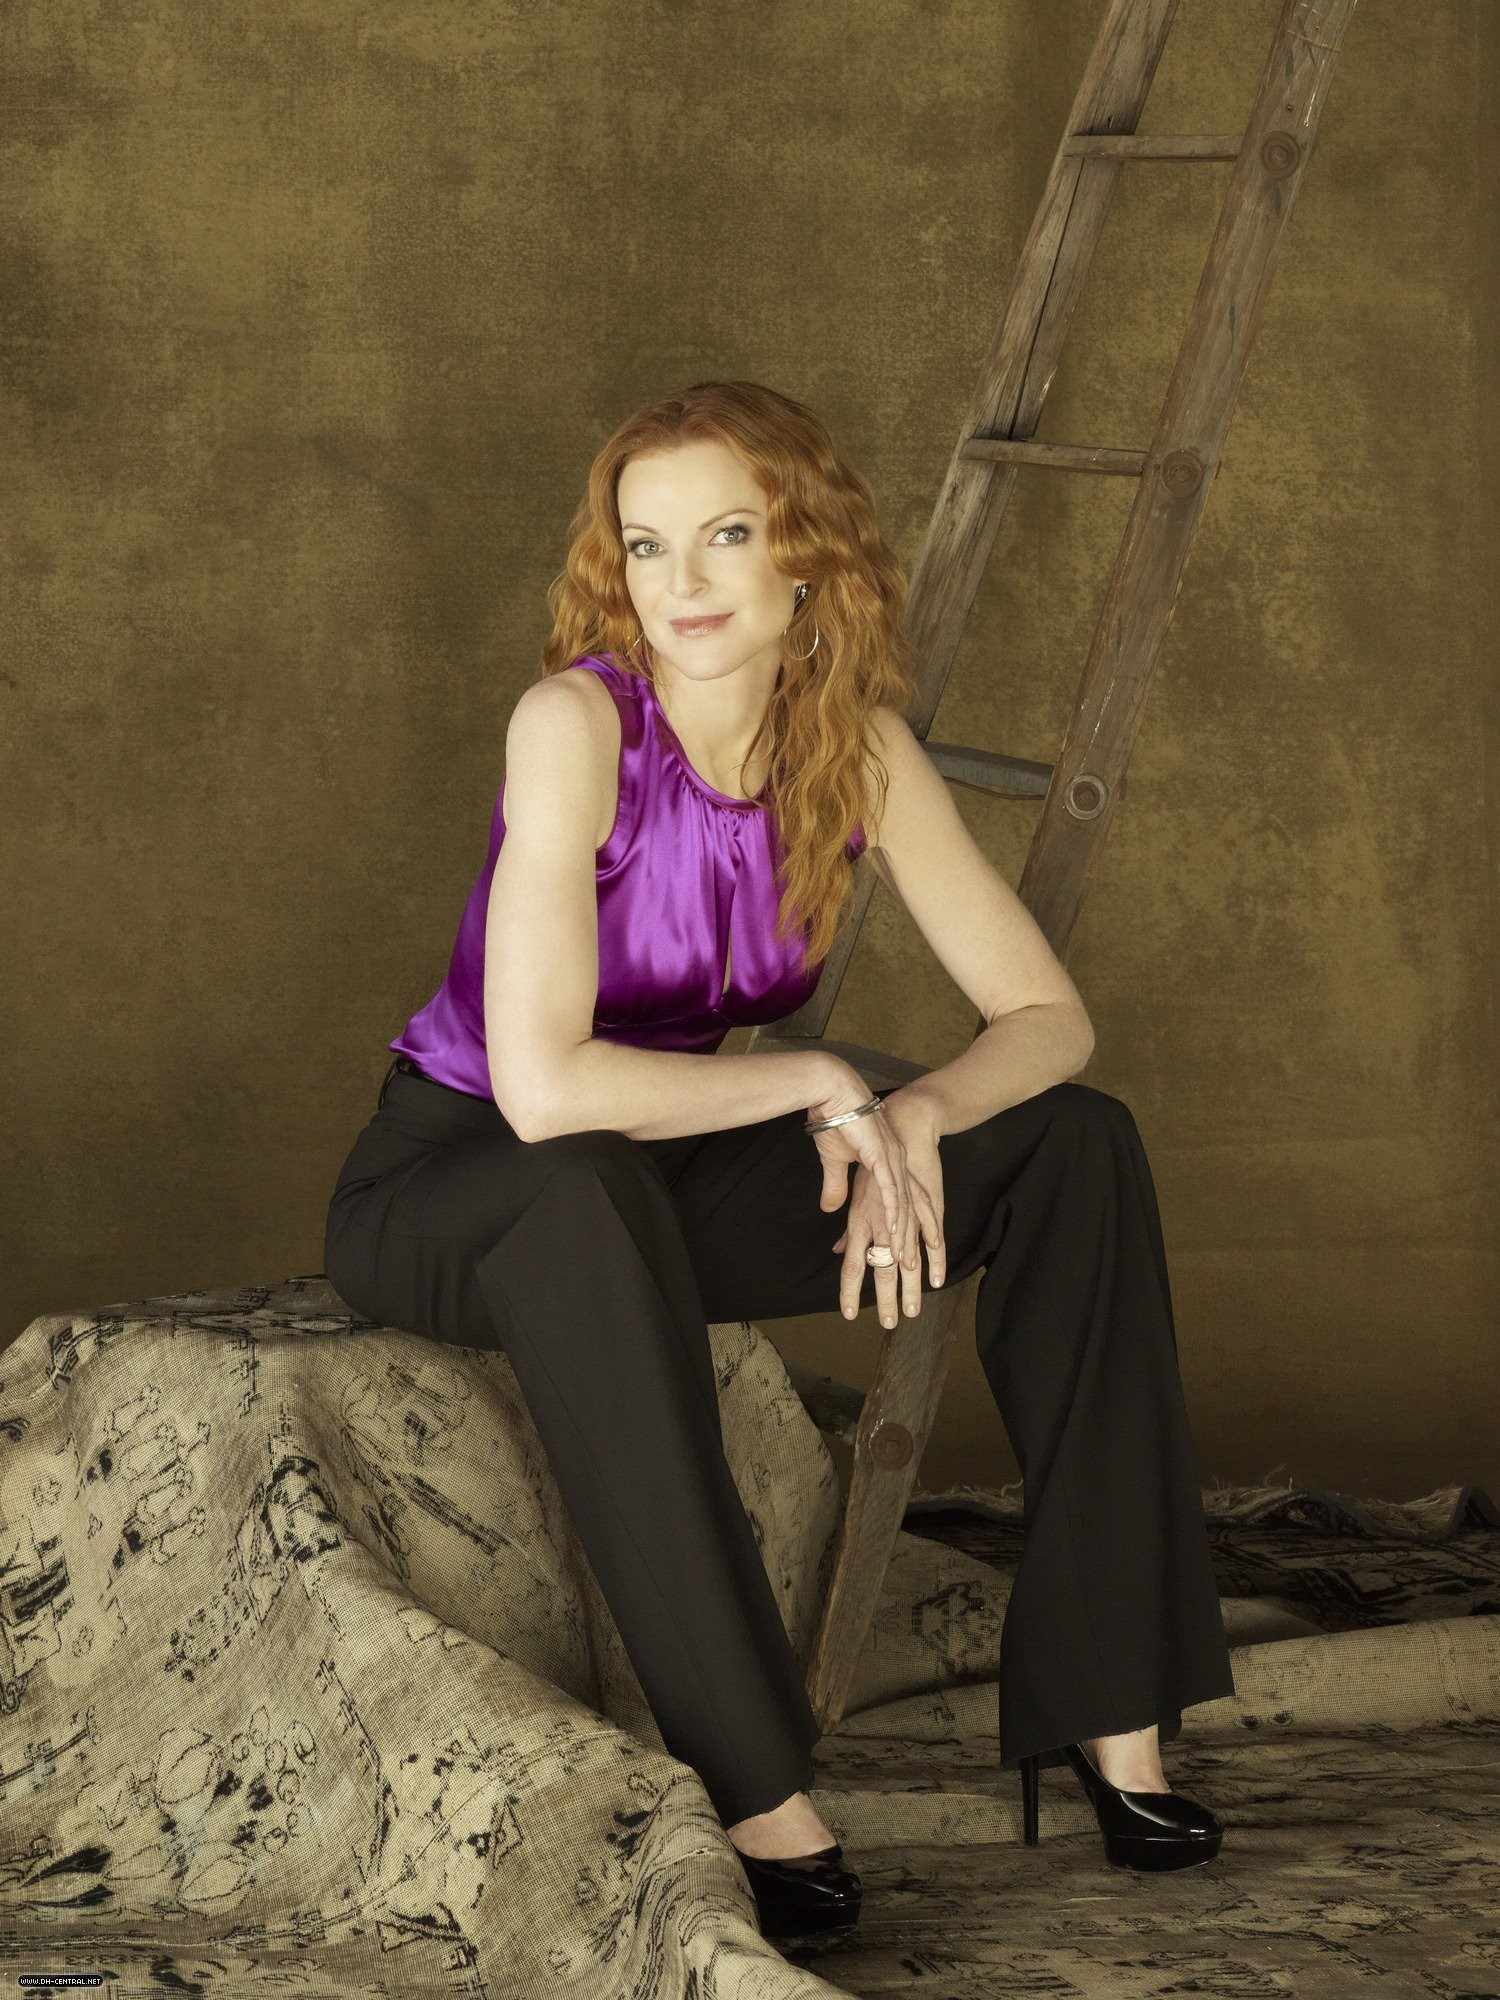 Image - Bree Van De Kamp.jpg - Desperate Housewives Wiki